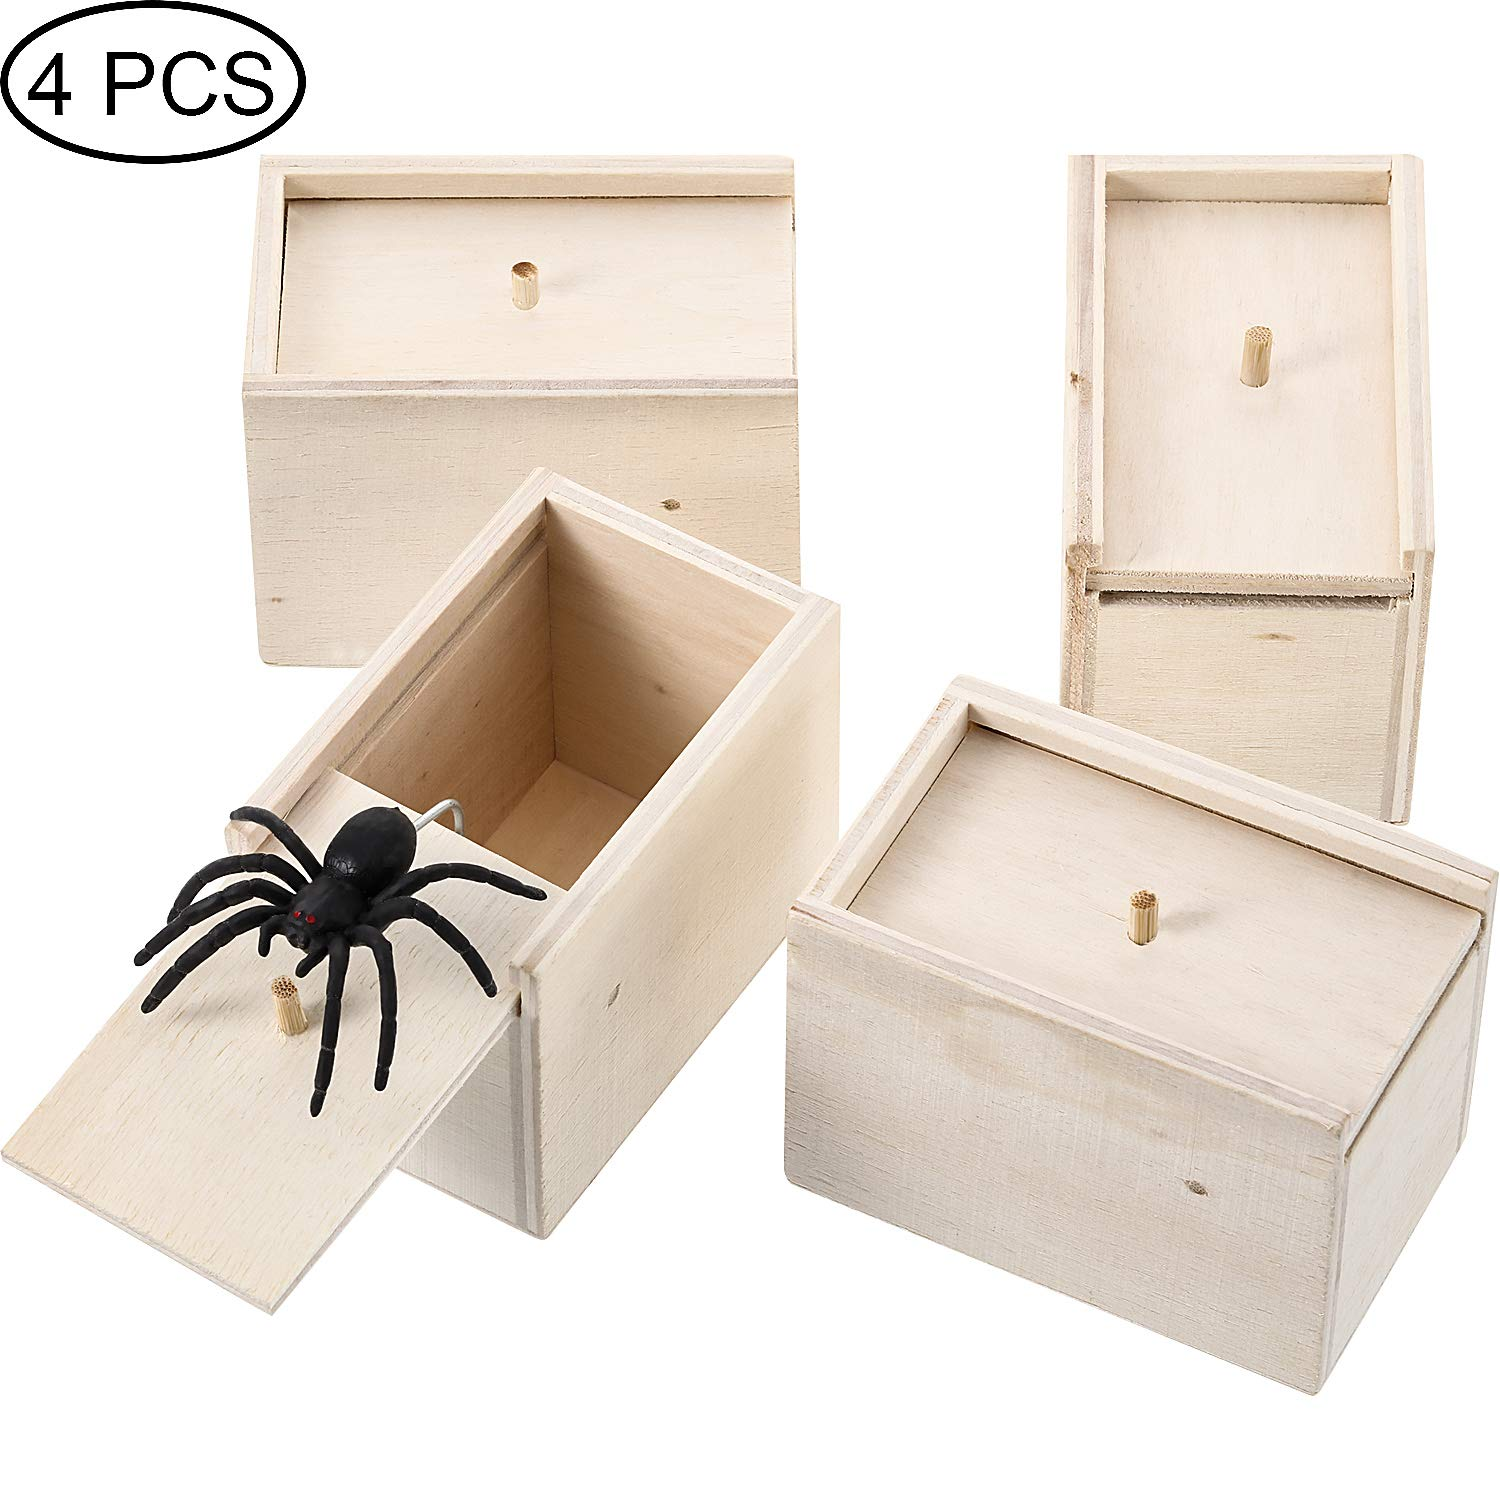 4 Pieces Spider Prank Scare Box, Wooden Surprise Box, Practical Handmade Fun Surprise Joke Boxes by Boao